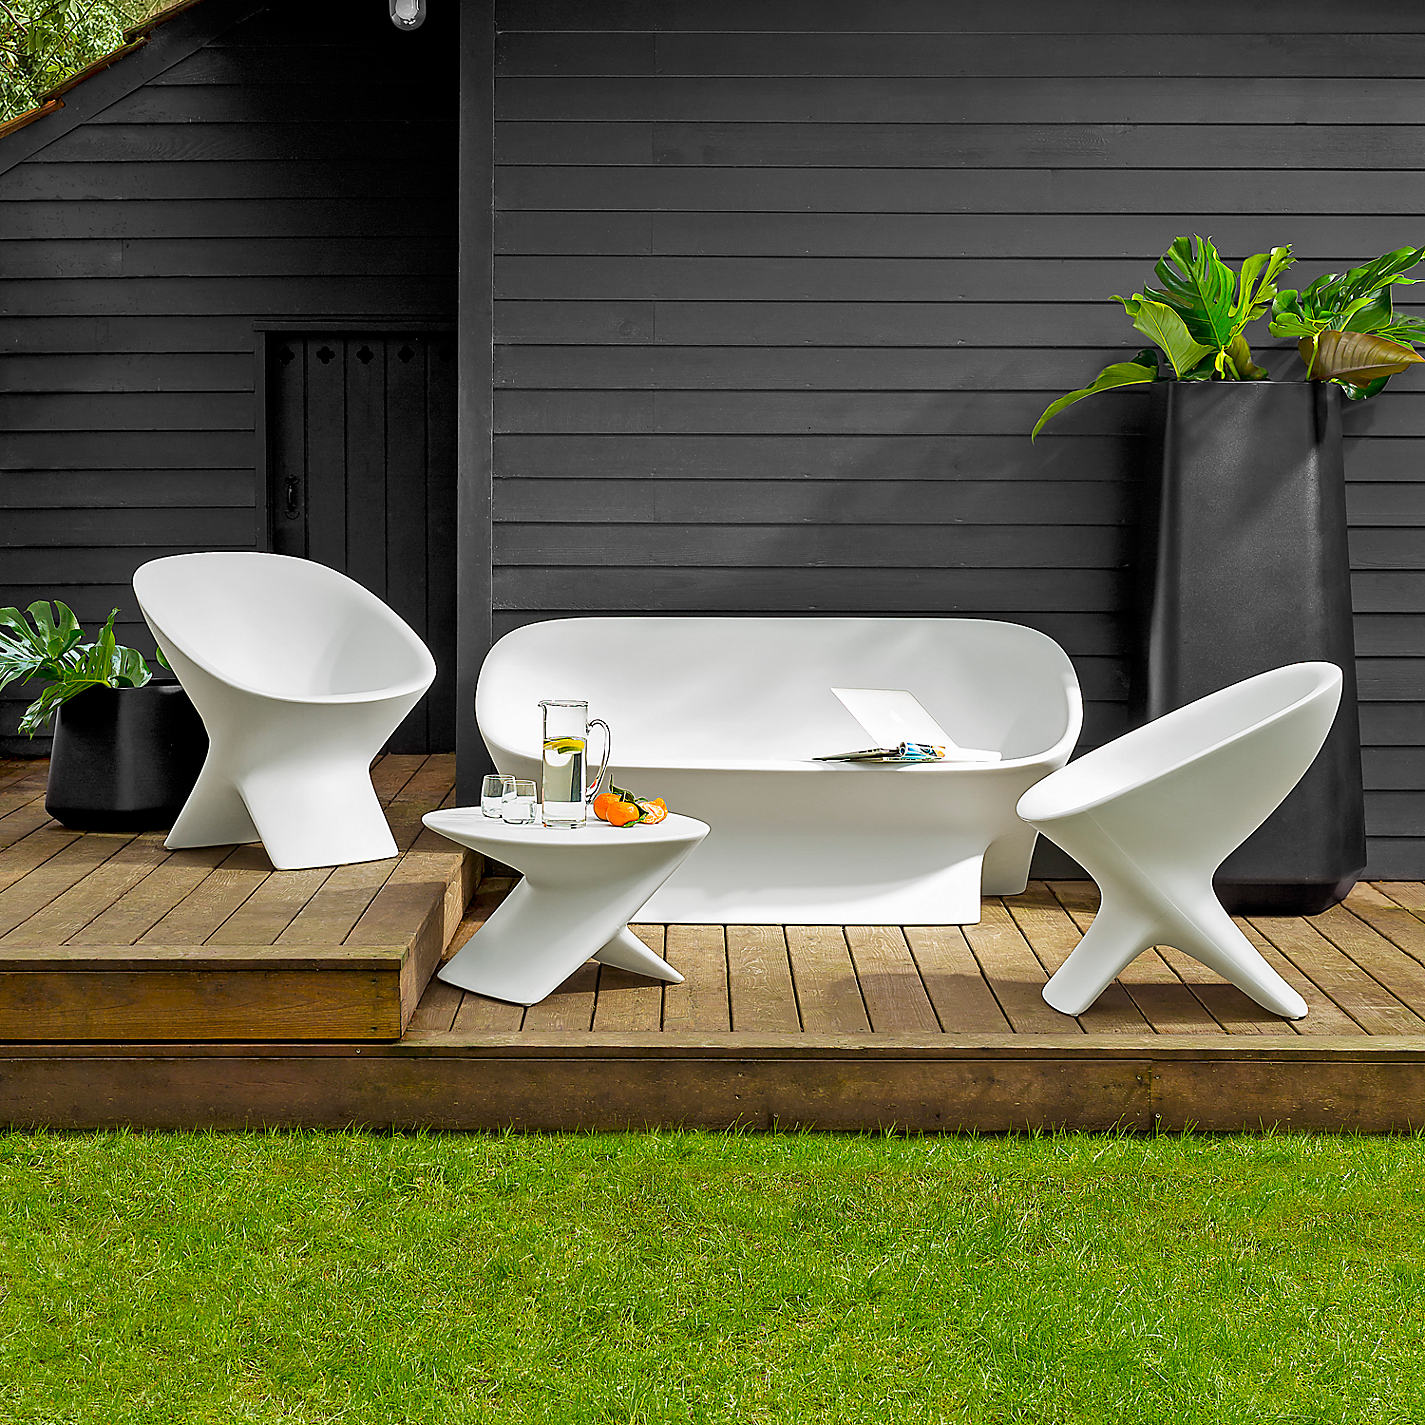 ... Cooldesign Recycled Material Outdoor Furniture Part 95